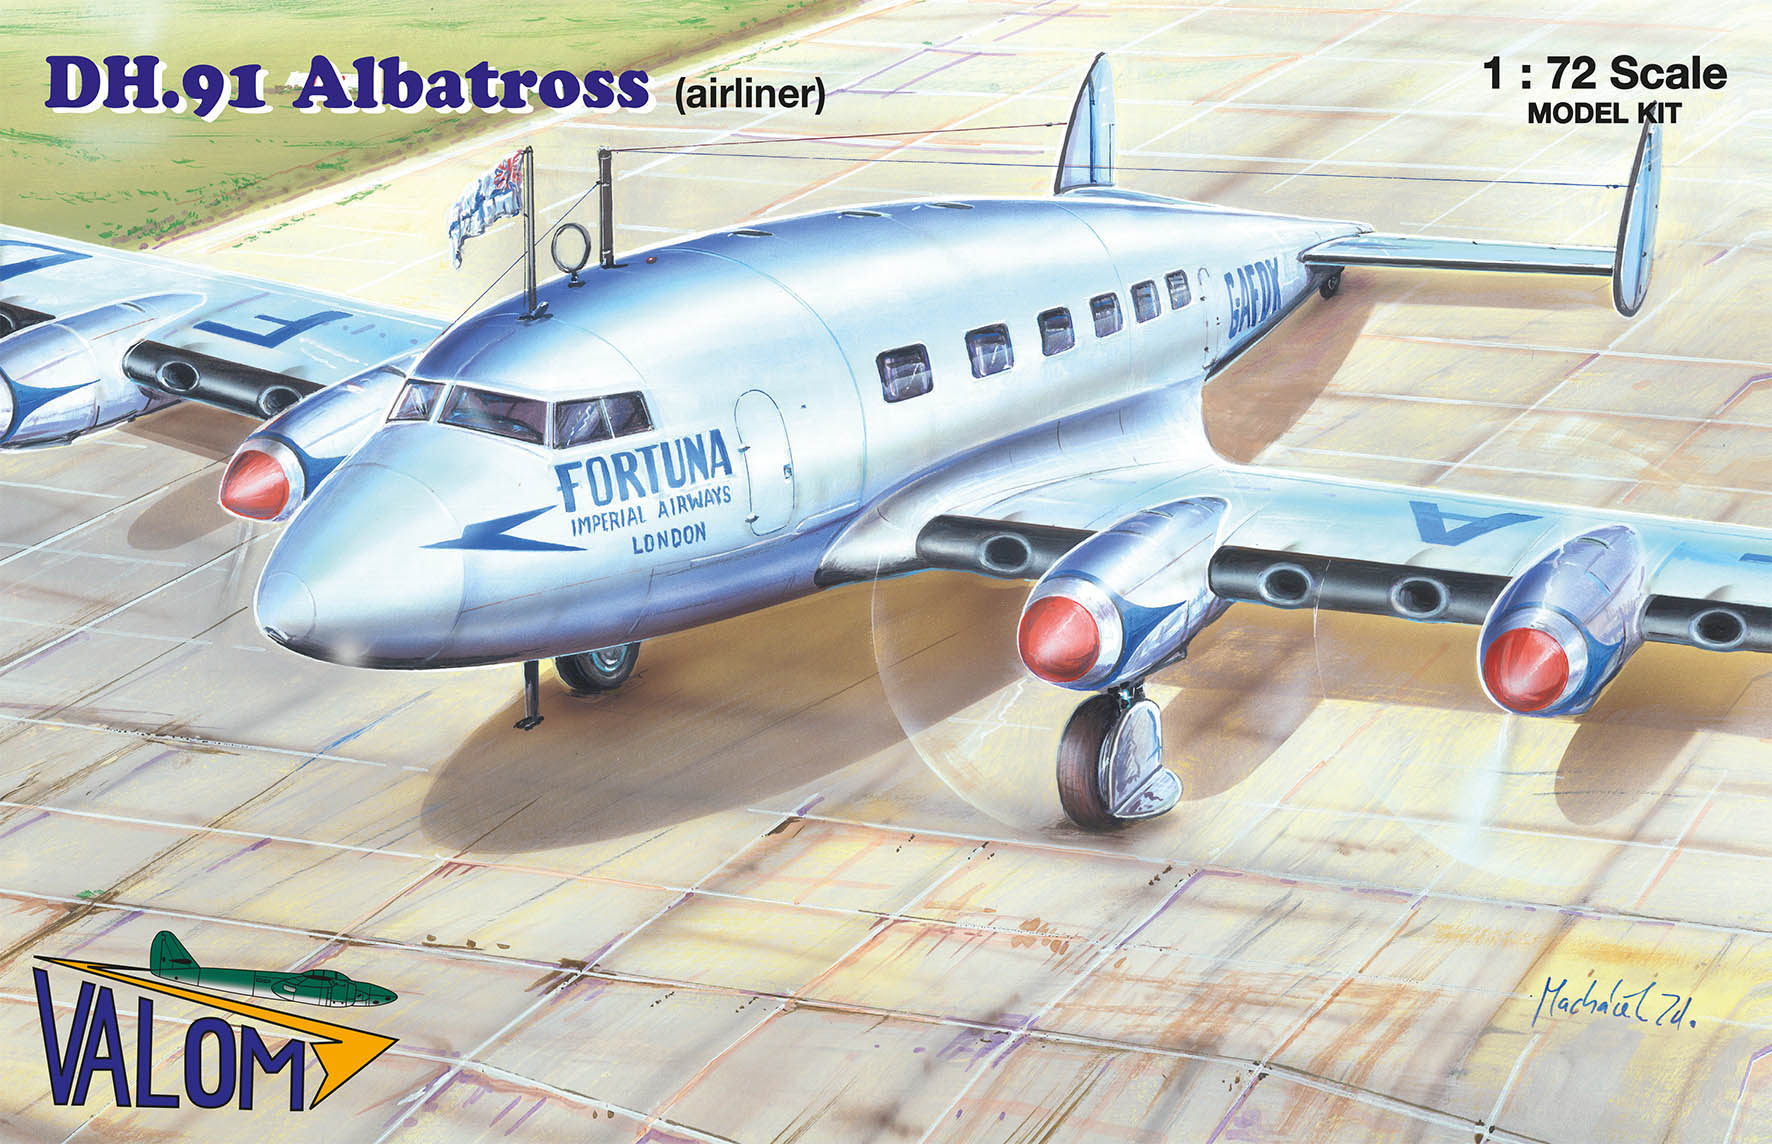 Valom DH.91 Albatross (airliner)